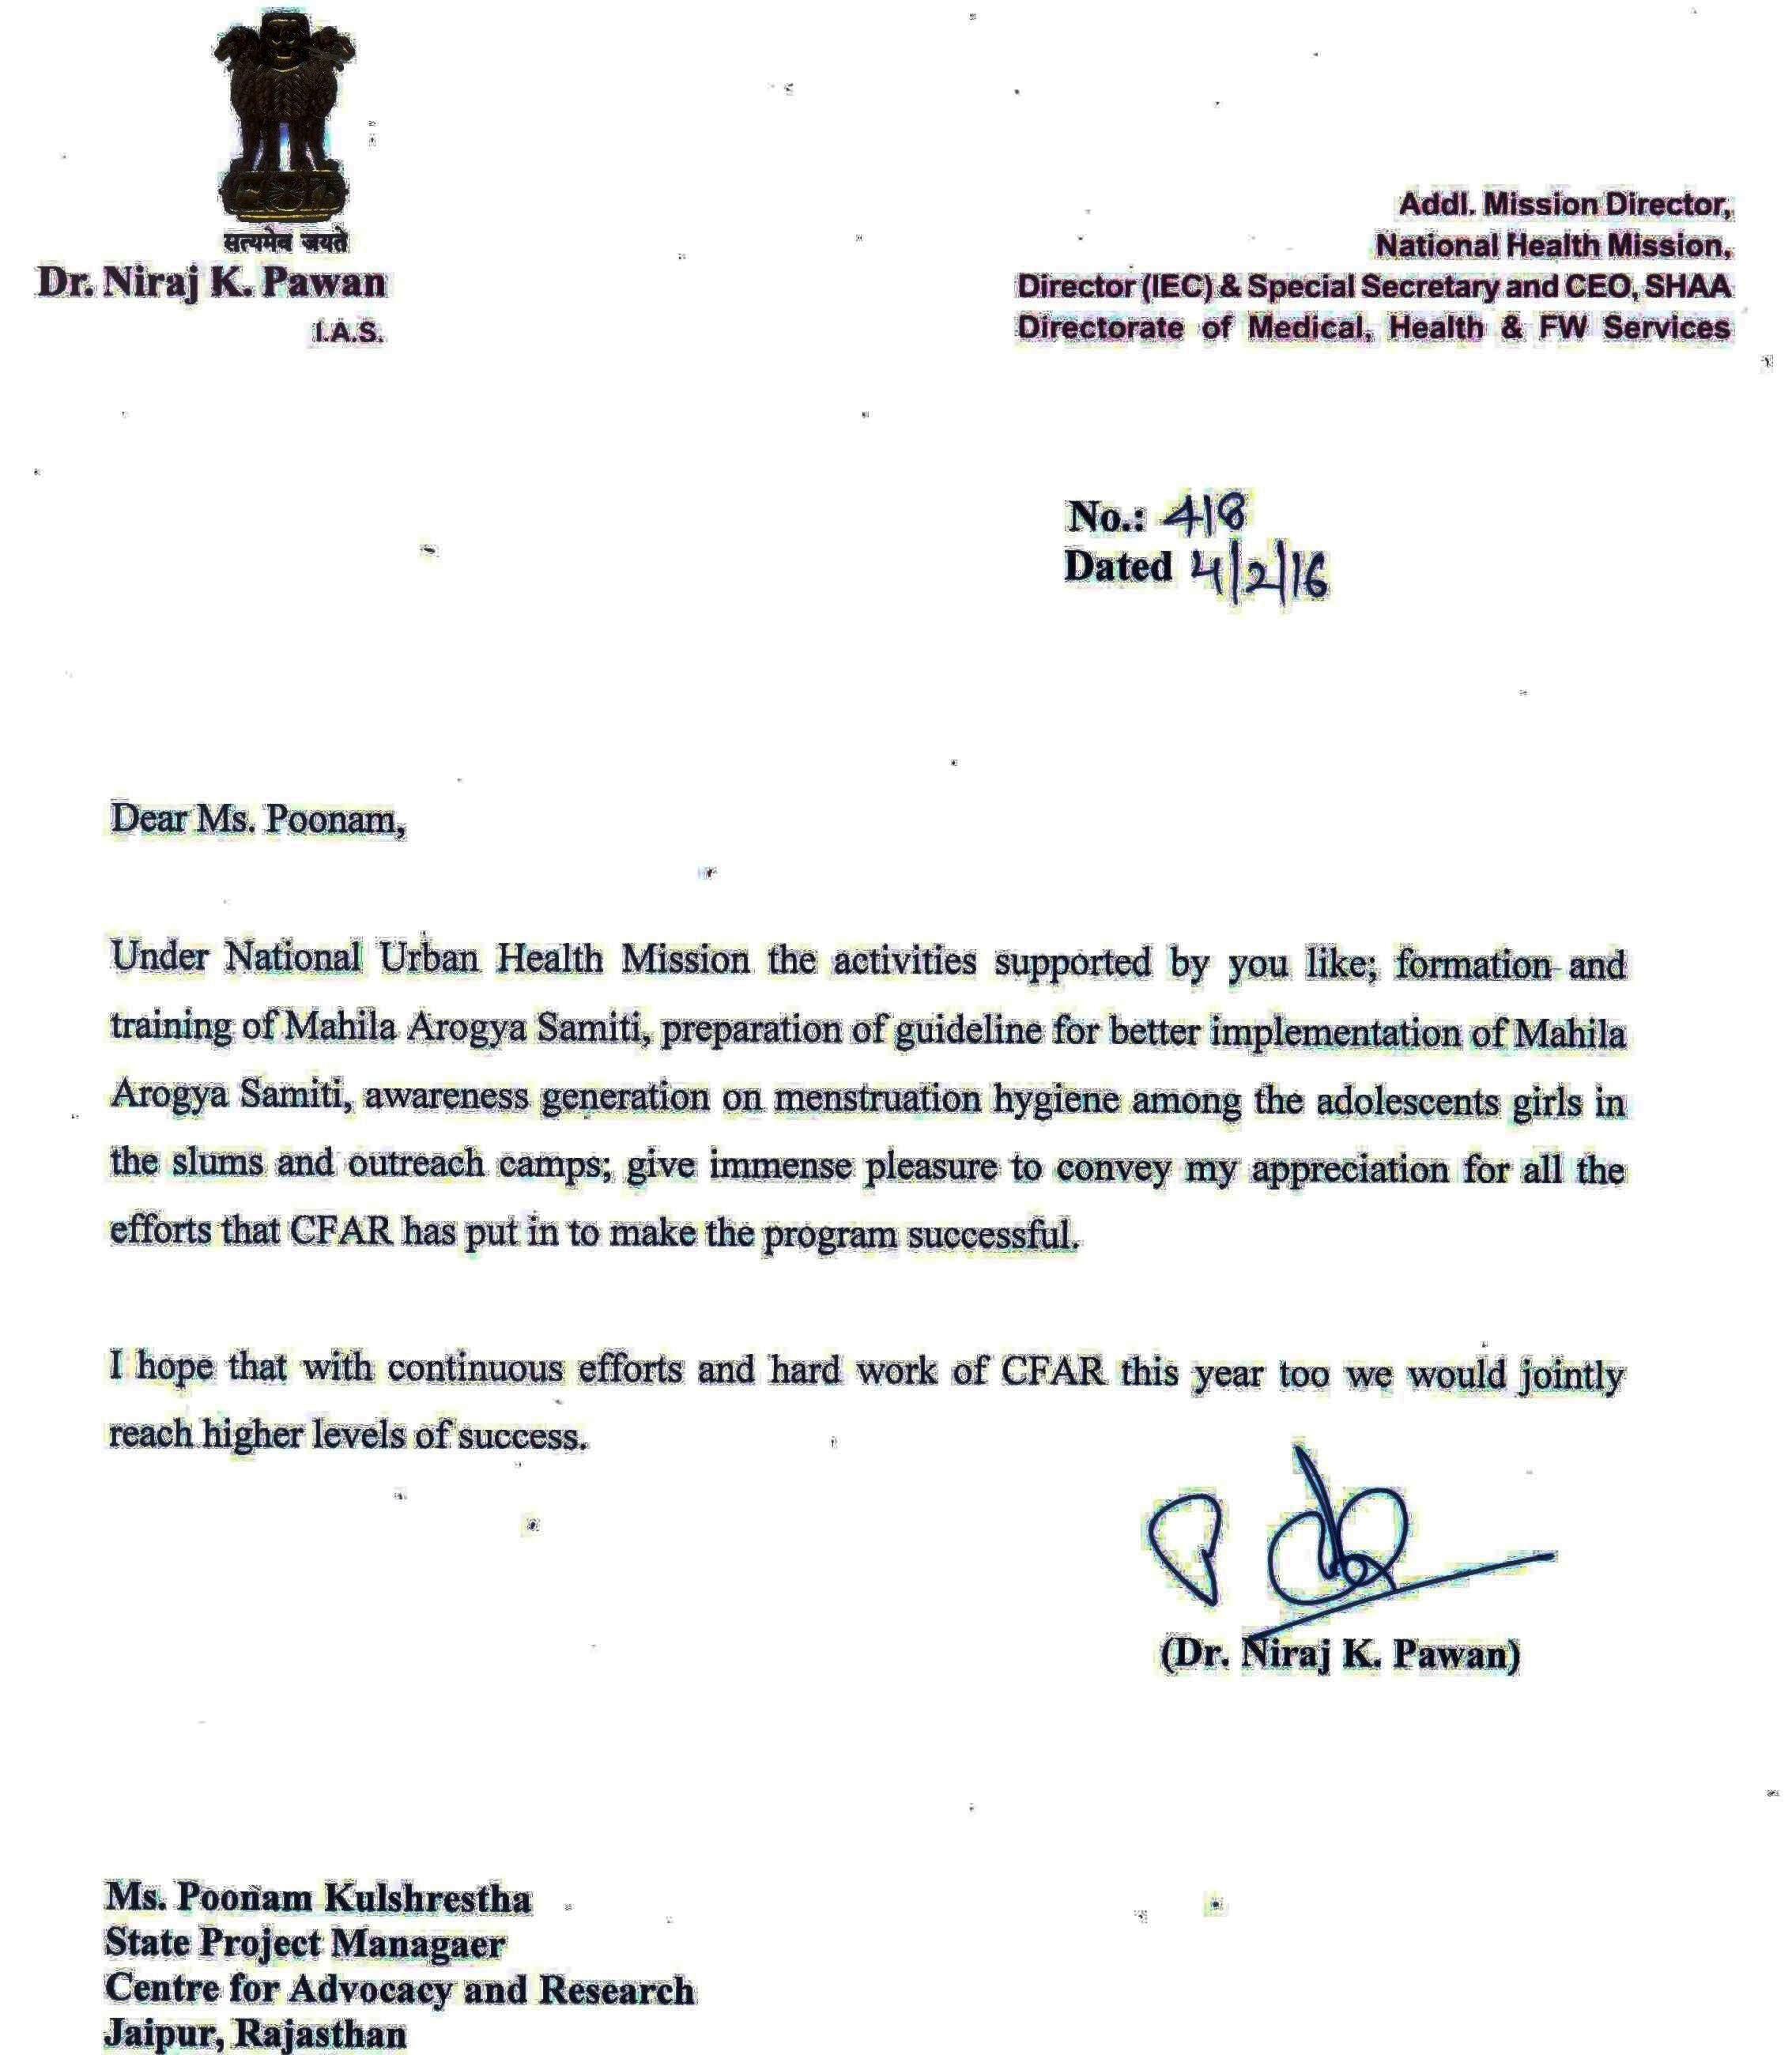 On February 4, 2016 CFAR received Letter of Appreciation from National Health Mission, Rajasthan for forming and training Mahila Arogya Samiti (Women's Health Committees) and for raising awareness on Menstrual Hygiene management among adolescent girls in slums.